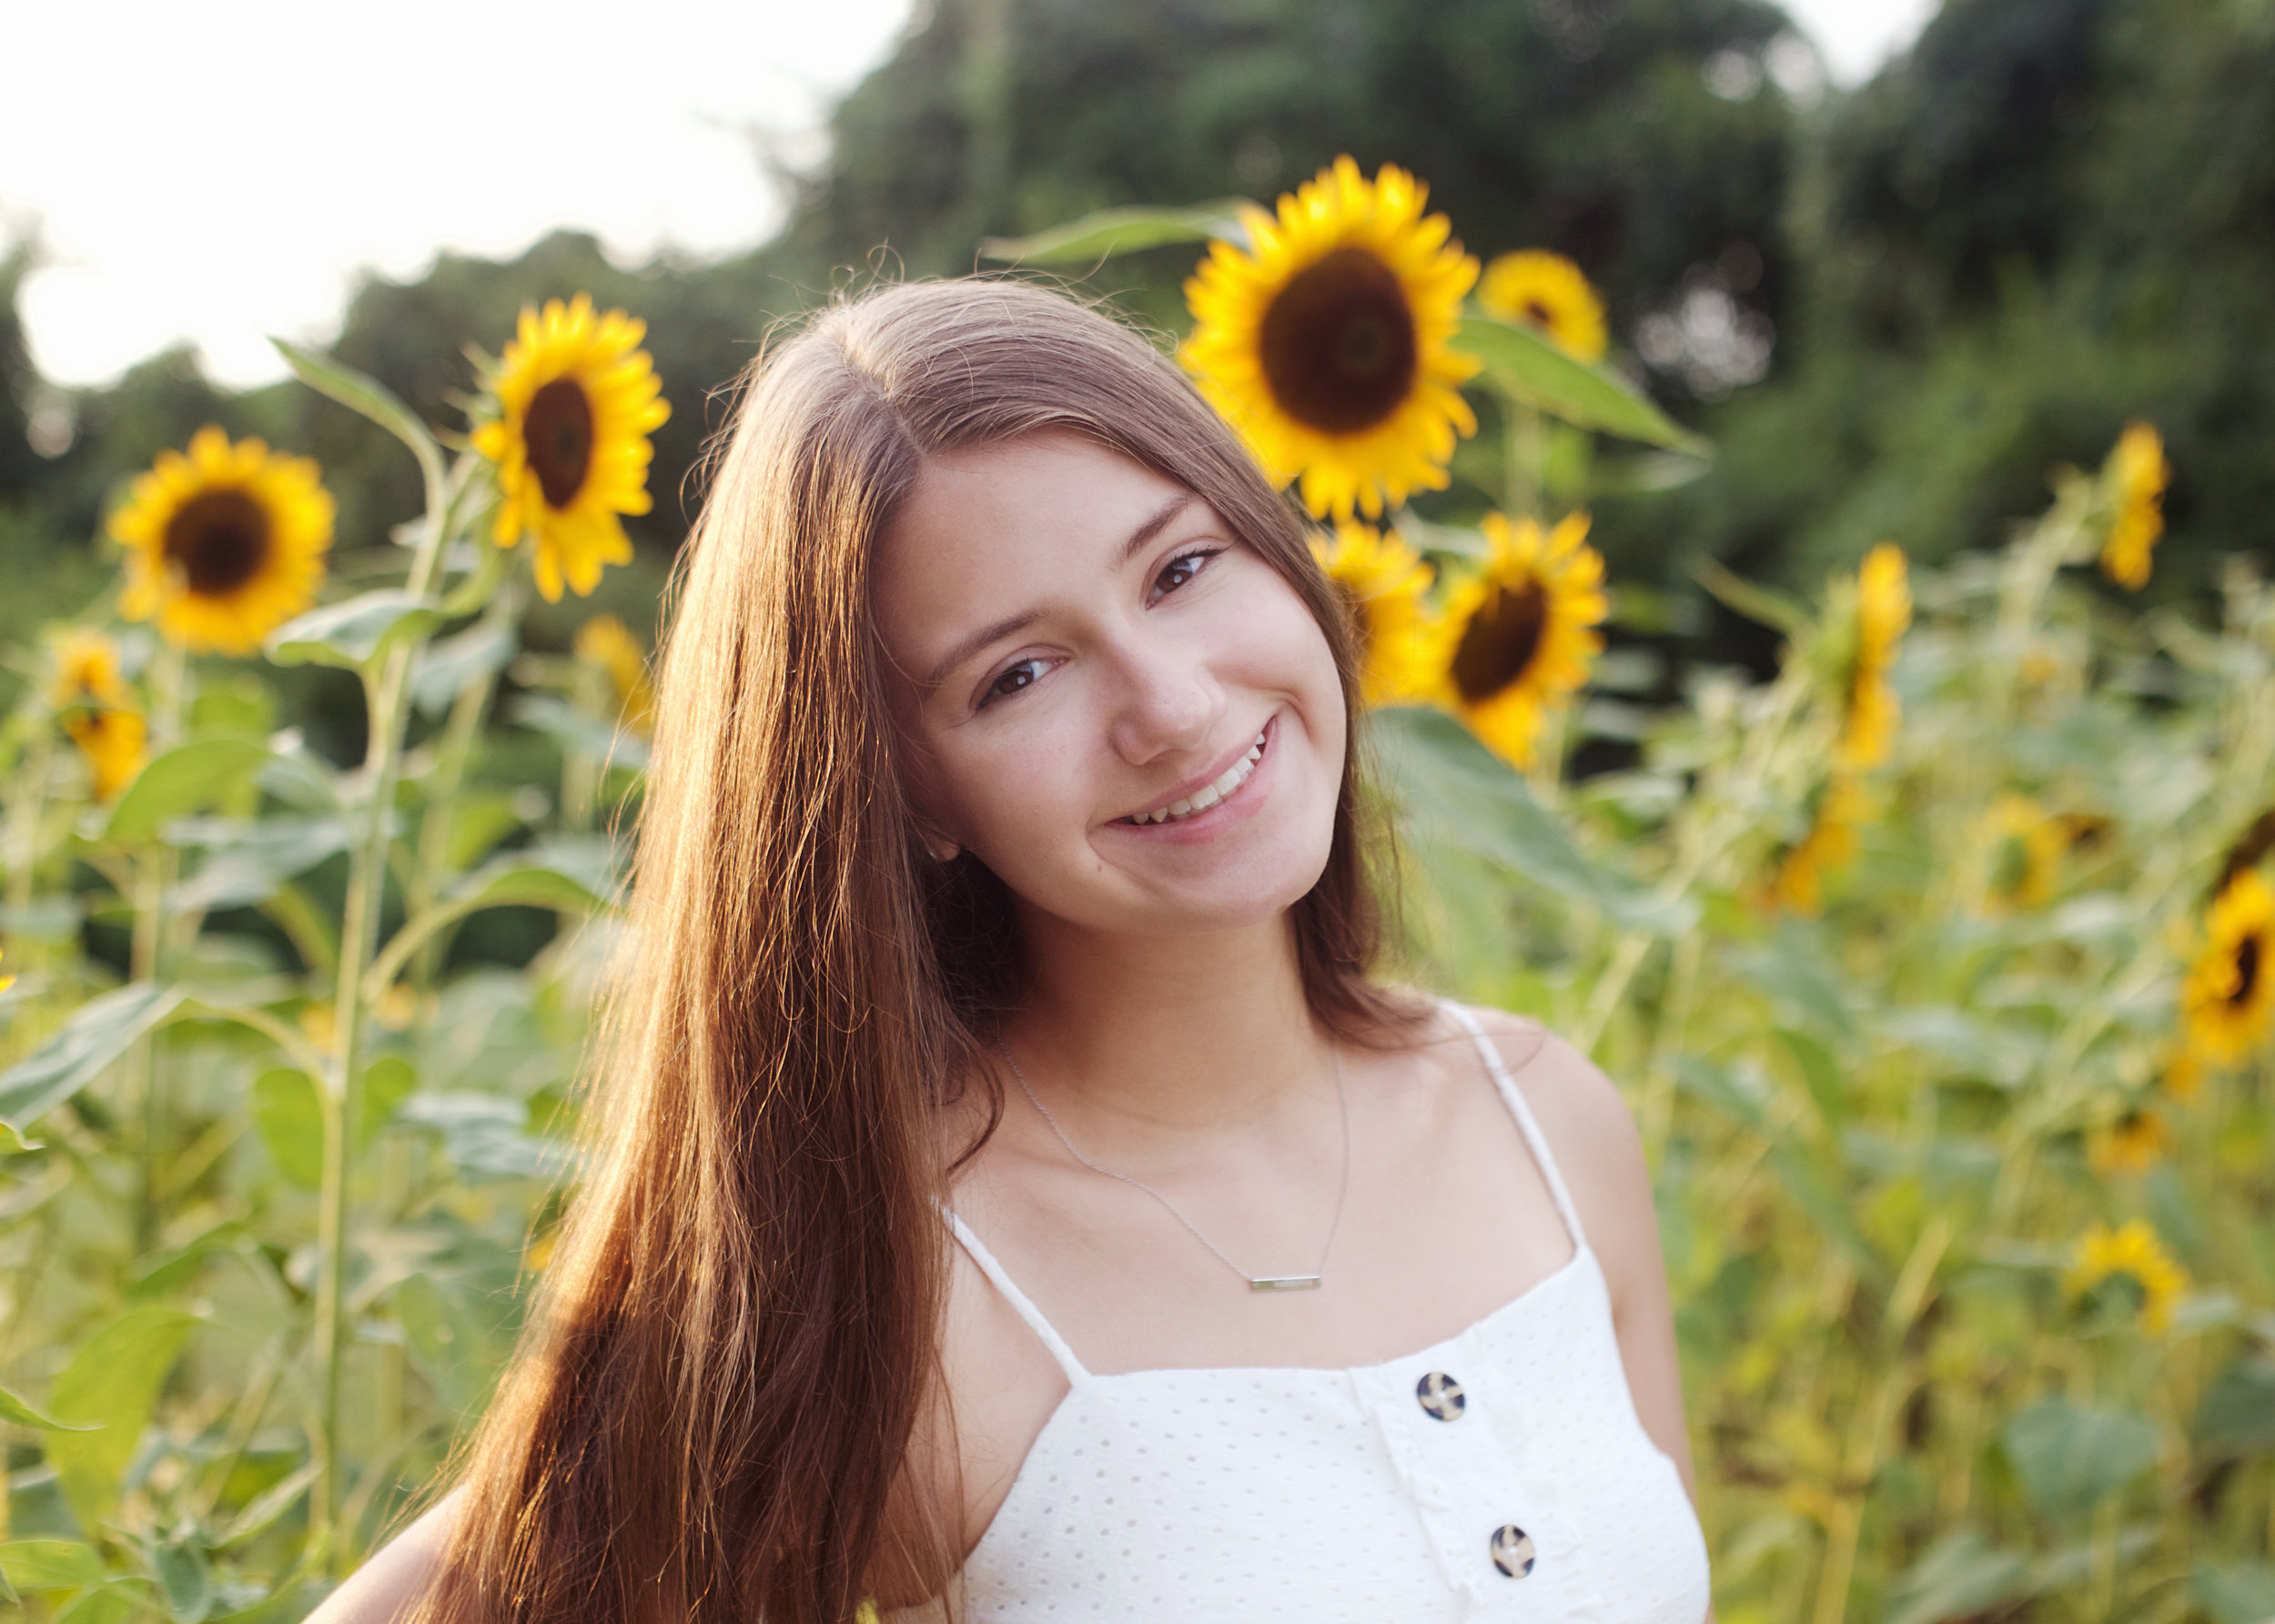 sunflower-smiles.jpg